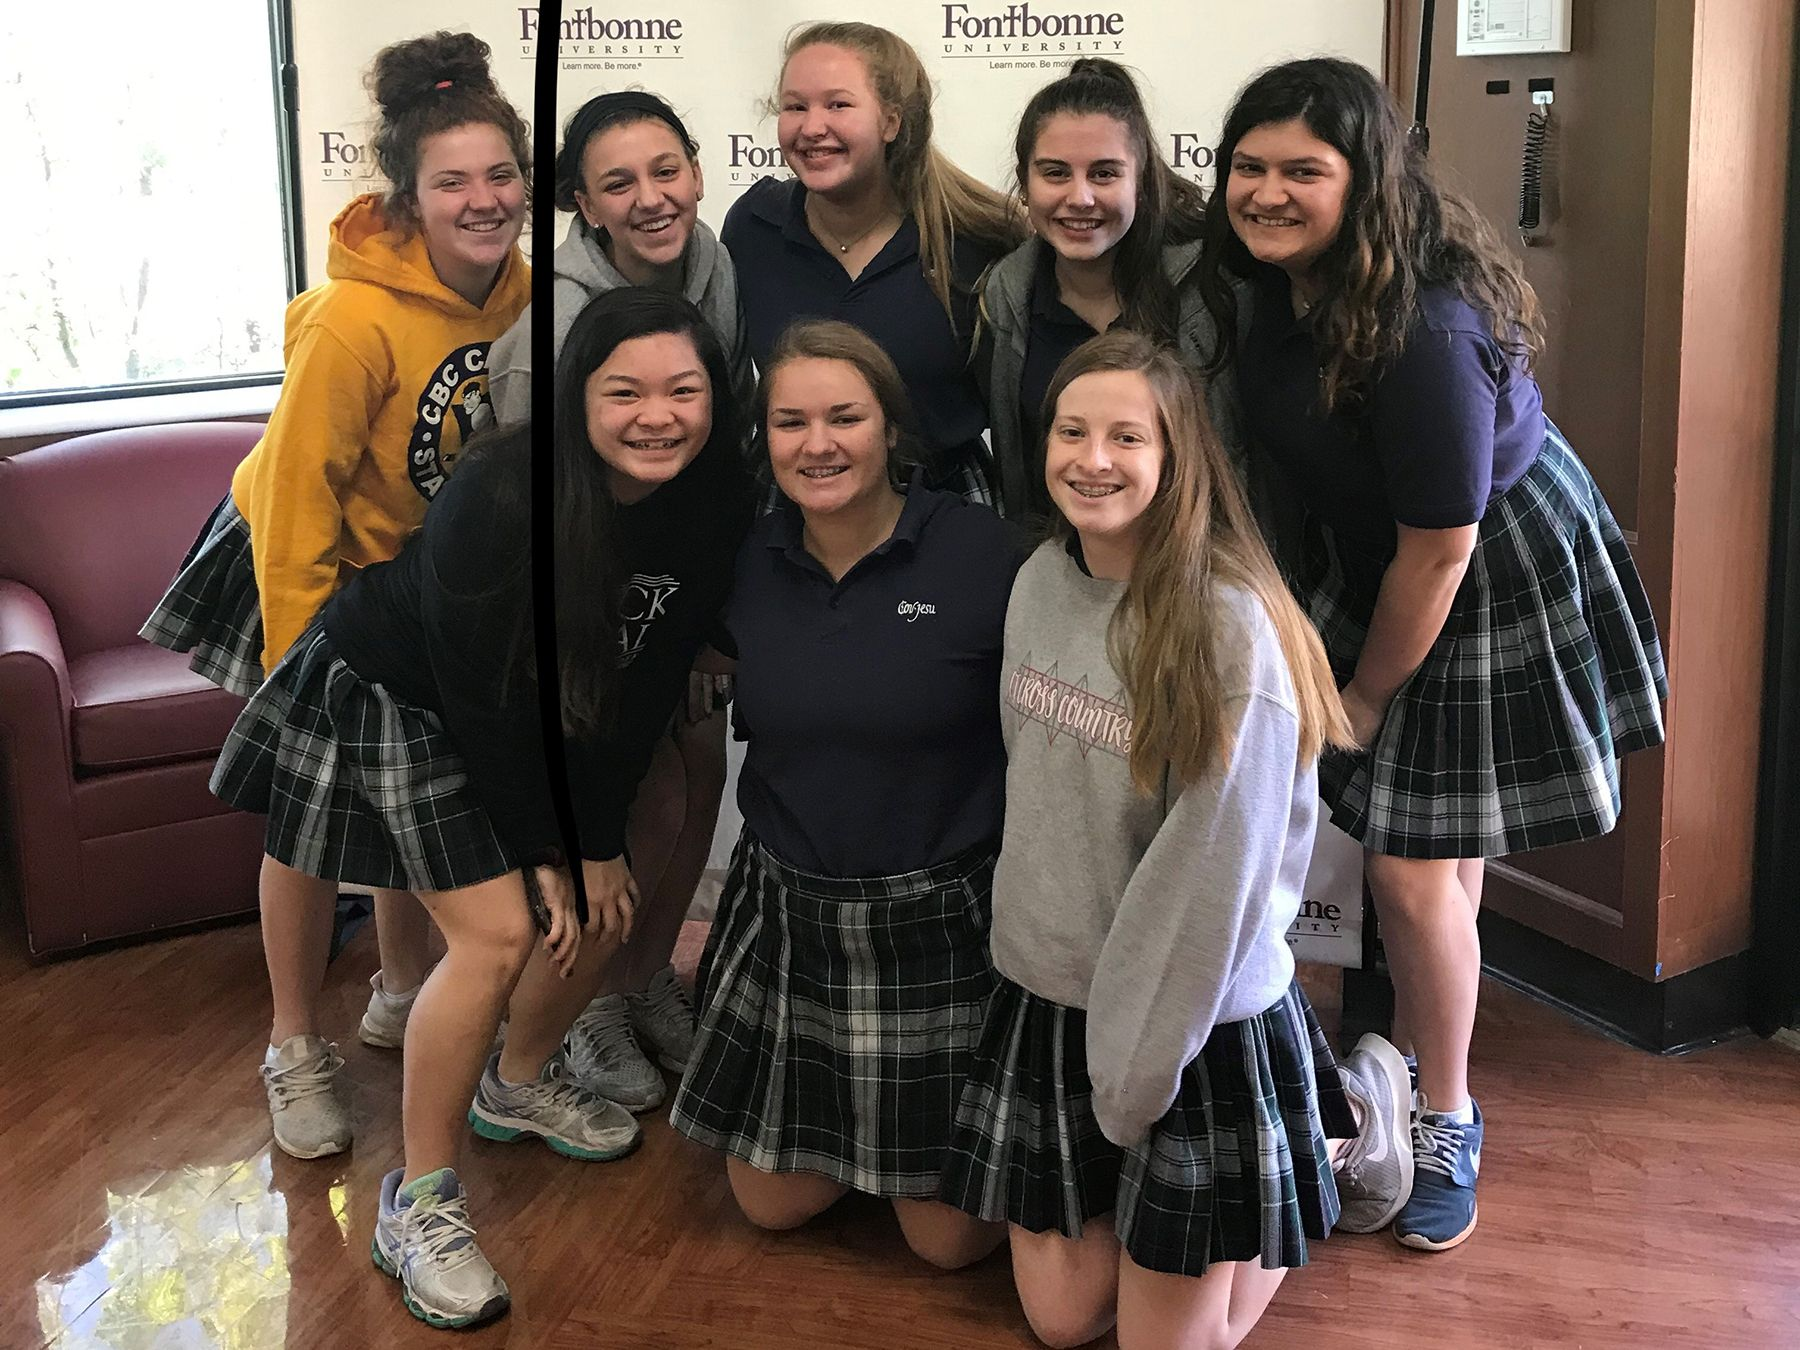 CJ Sophomores at Fontbonne on College visit day